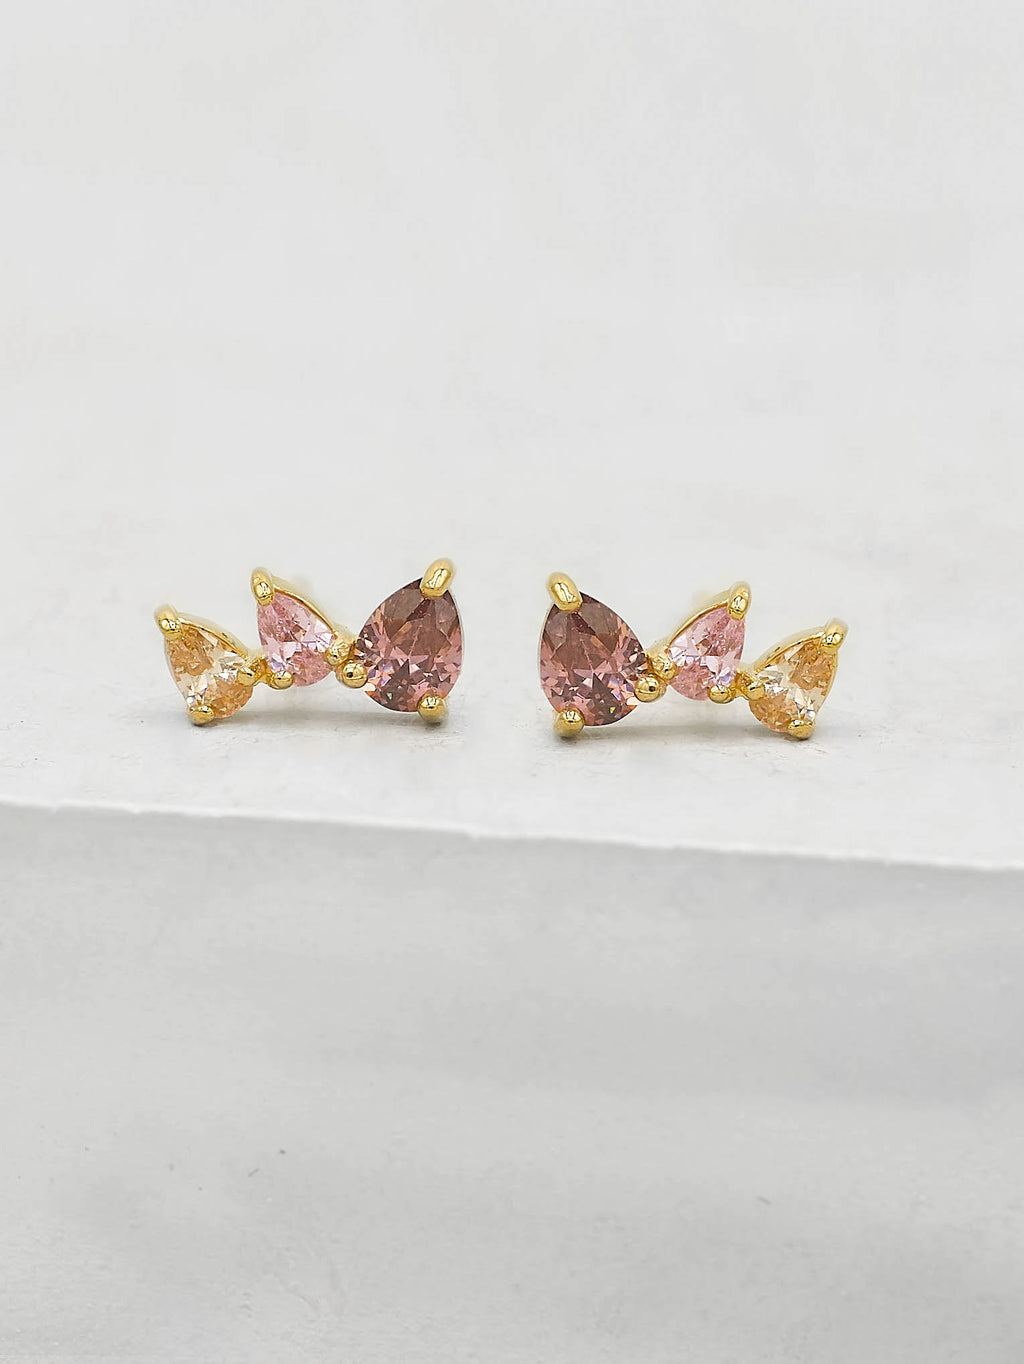 Gold Plated 3 Stones Pink Ruby  Pear Shape Cubic Zirconia CZ Stud Earrings by The Faint Hearted jewelry